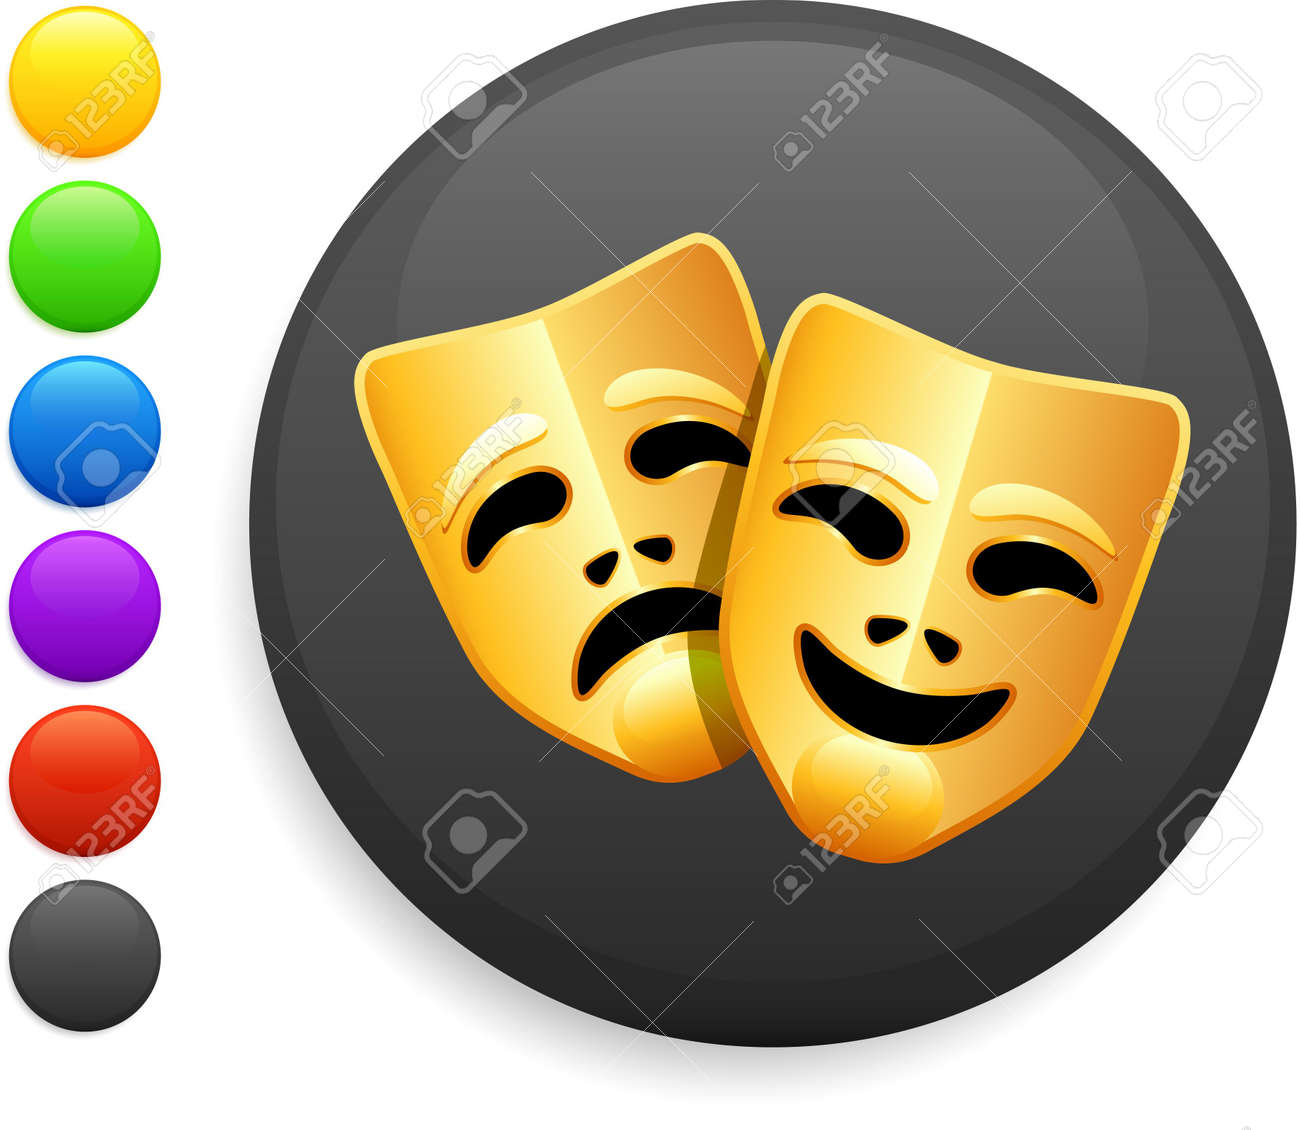 tragedy and comedy masks icon on round internet buttonoriginal vector illustration6 color versions included - 6572569